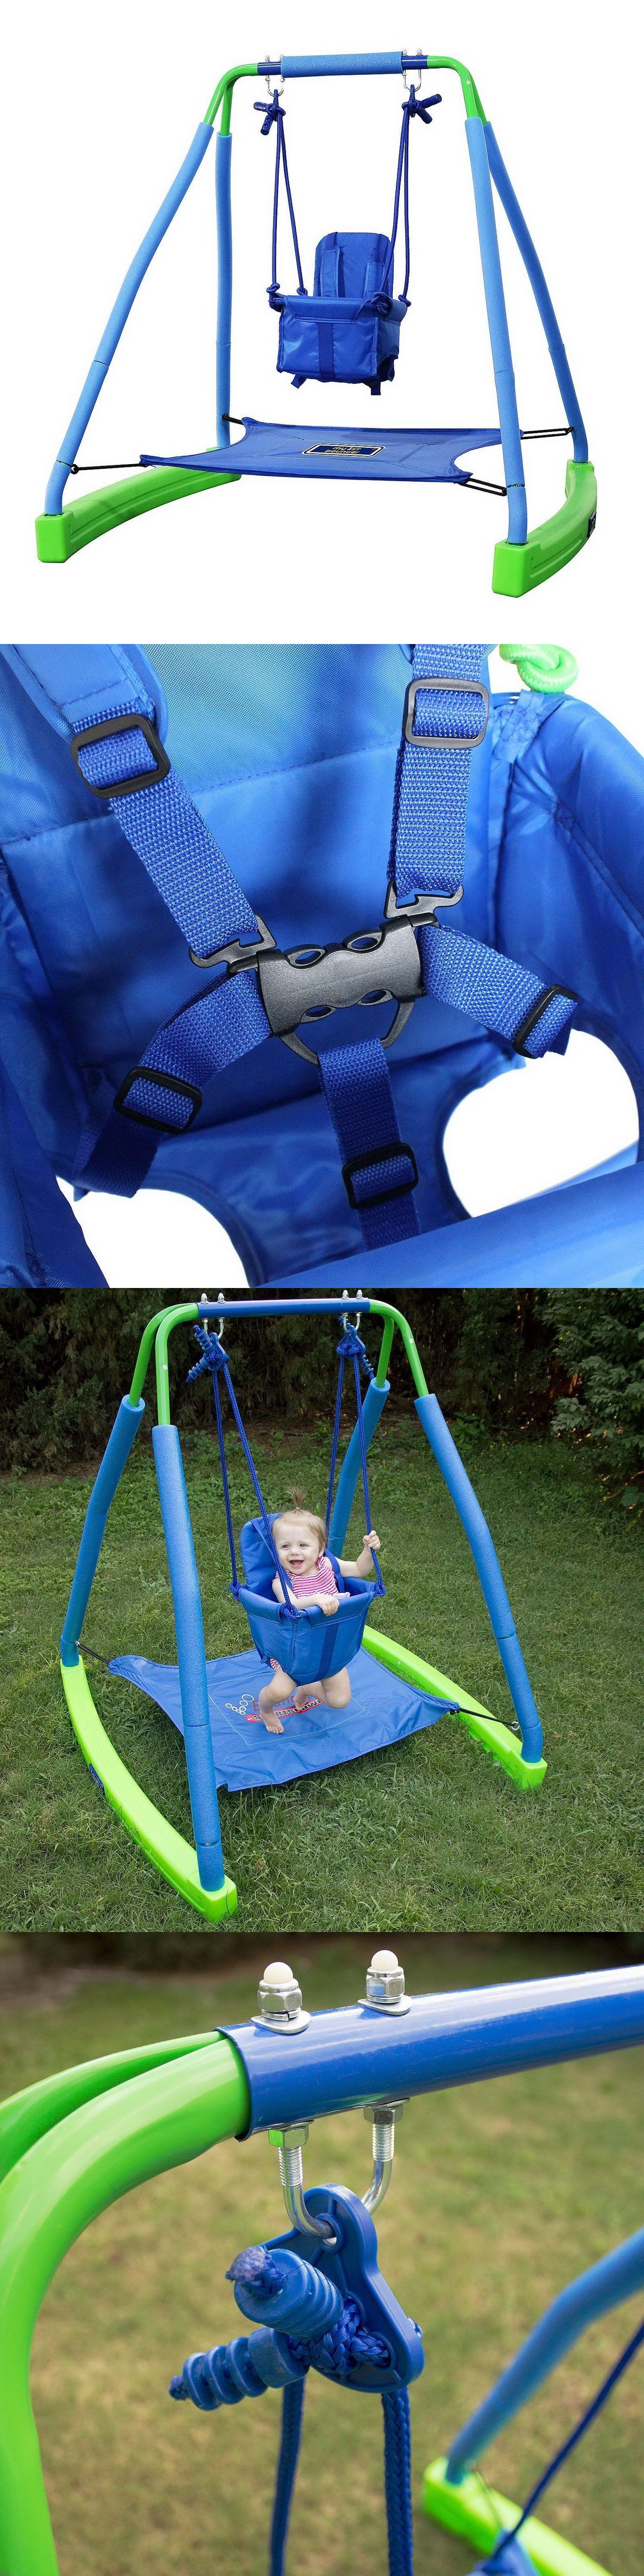 small resolution of baby swings 2990 my first toddler baby bucket swing with bouncer safety harness age 9 36 months buy it now only 112 95 on ebay